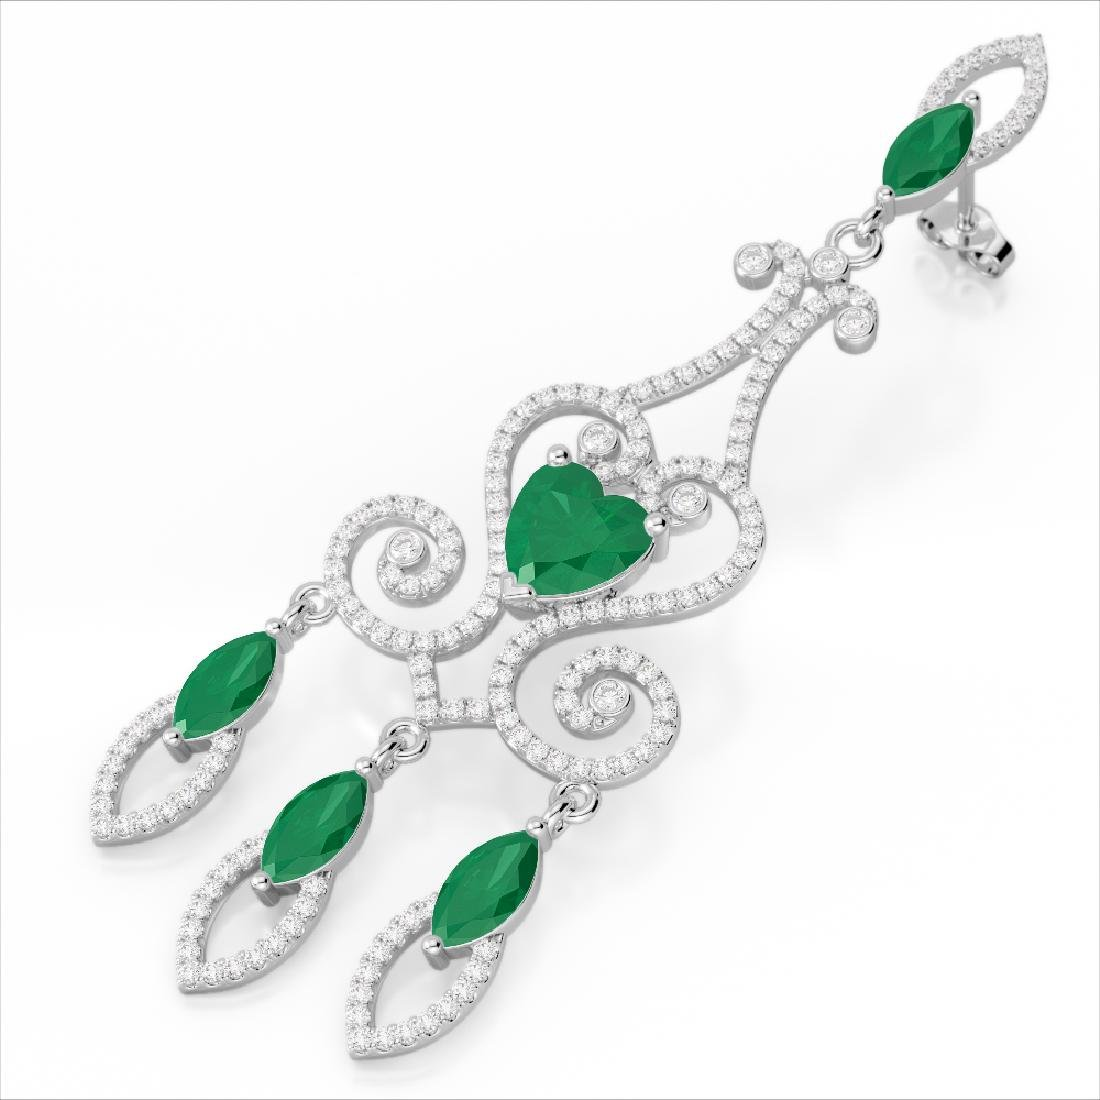 11 CTW Emerald & Micro Pave VS/SI Diamond Earrings 14K